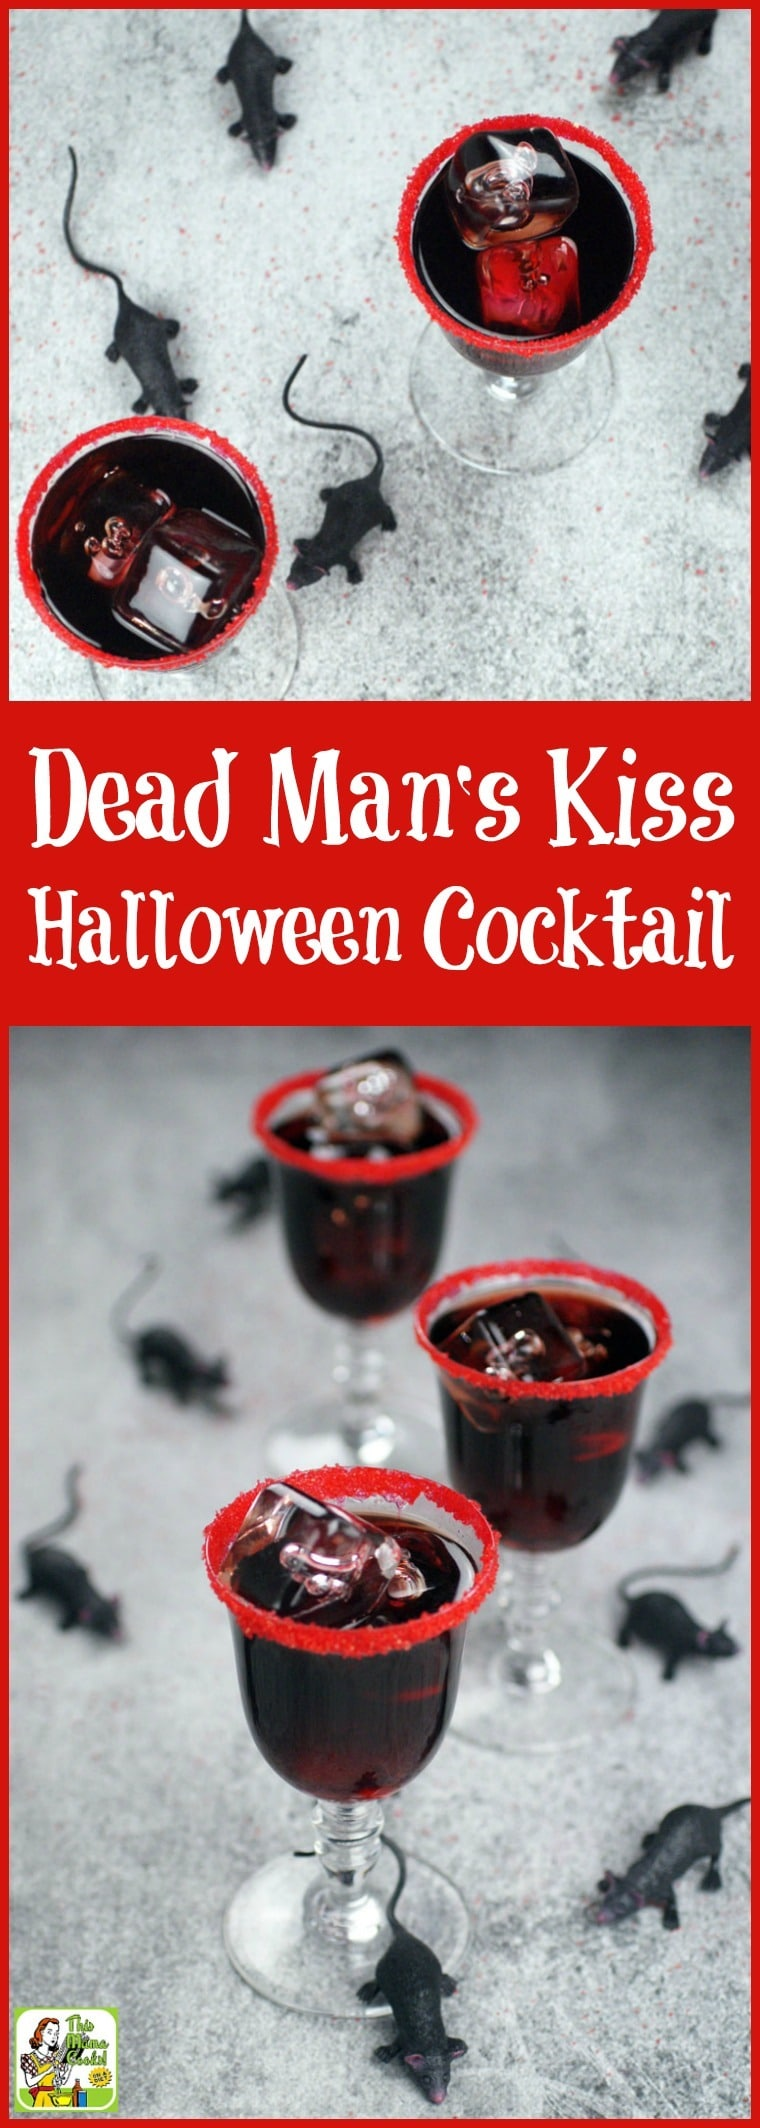 Searching for black cocktails for Halloween? Try a Dead Man's Kiss Cocktail made with black vodka, coffee liqueur, and Frangelico. Includes an easy black vodka recipe for making black Halloween cocktails. Everyone will love this spooky black cocktail drink recipe. #recipeoftheday #Halloween #cocktails #cocktail #drinks #drinking #vodka #alcohol #drinkrecipes